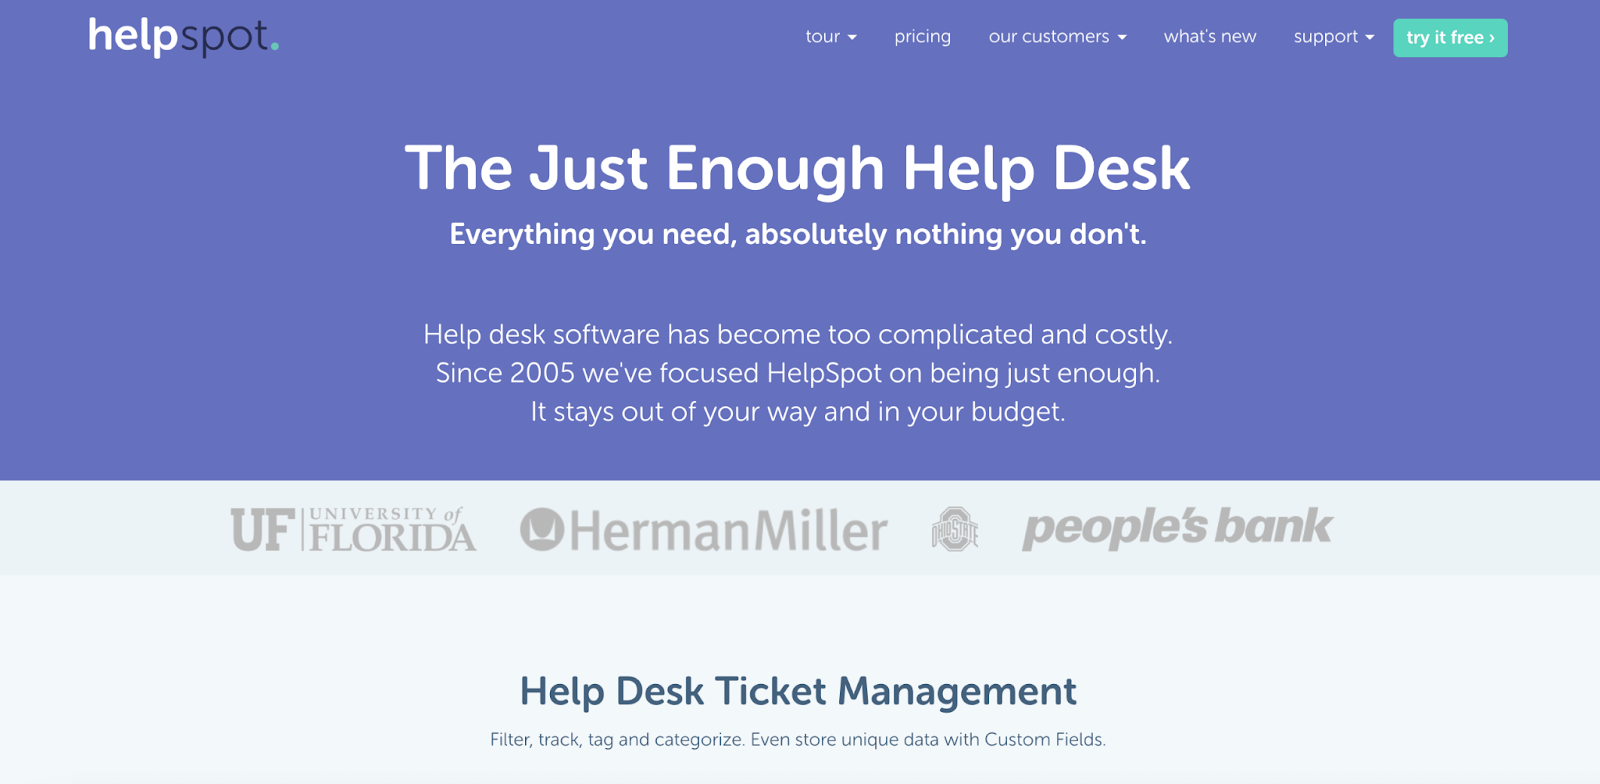 HelpSpot homepage: The Just Enough Help Desk - Everything you need, absolutely nothing you don't.